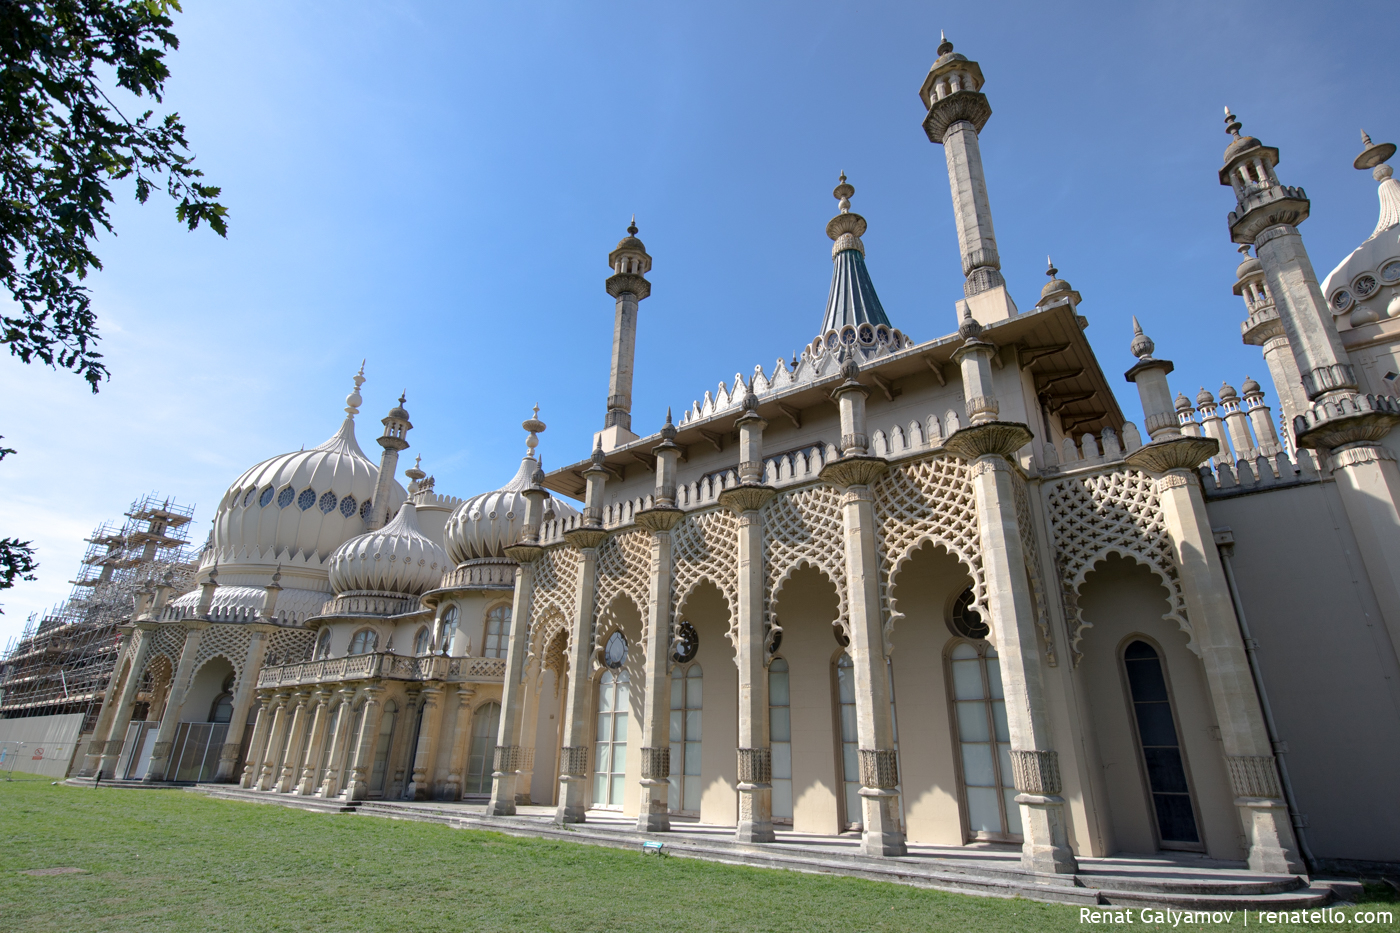 The Royal Pavilion